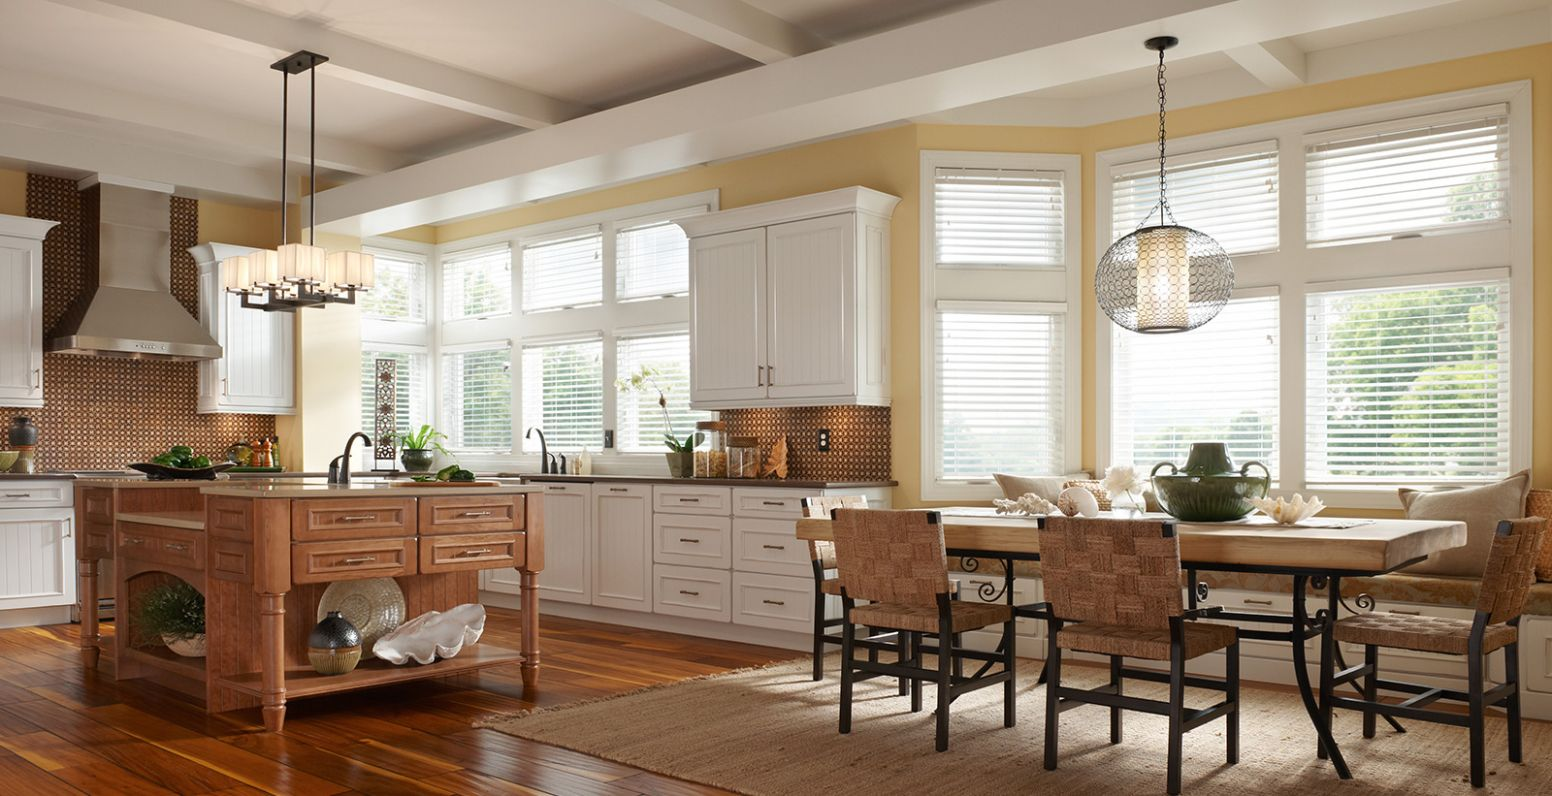 Yellow Kitchen Ideas and Inspirational Paint Colors | Behr - kitchen paint ideas yellow